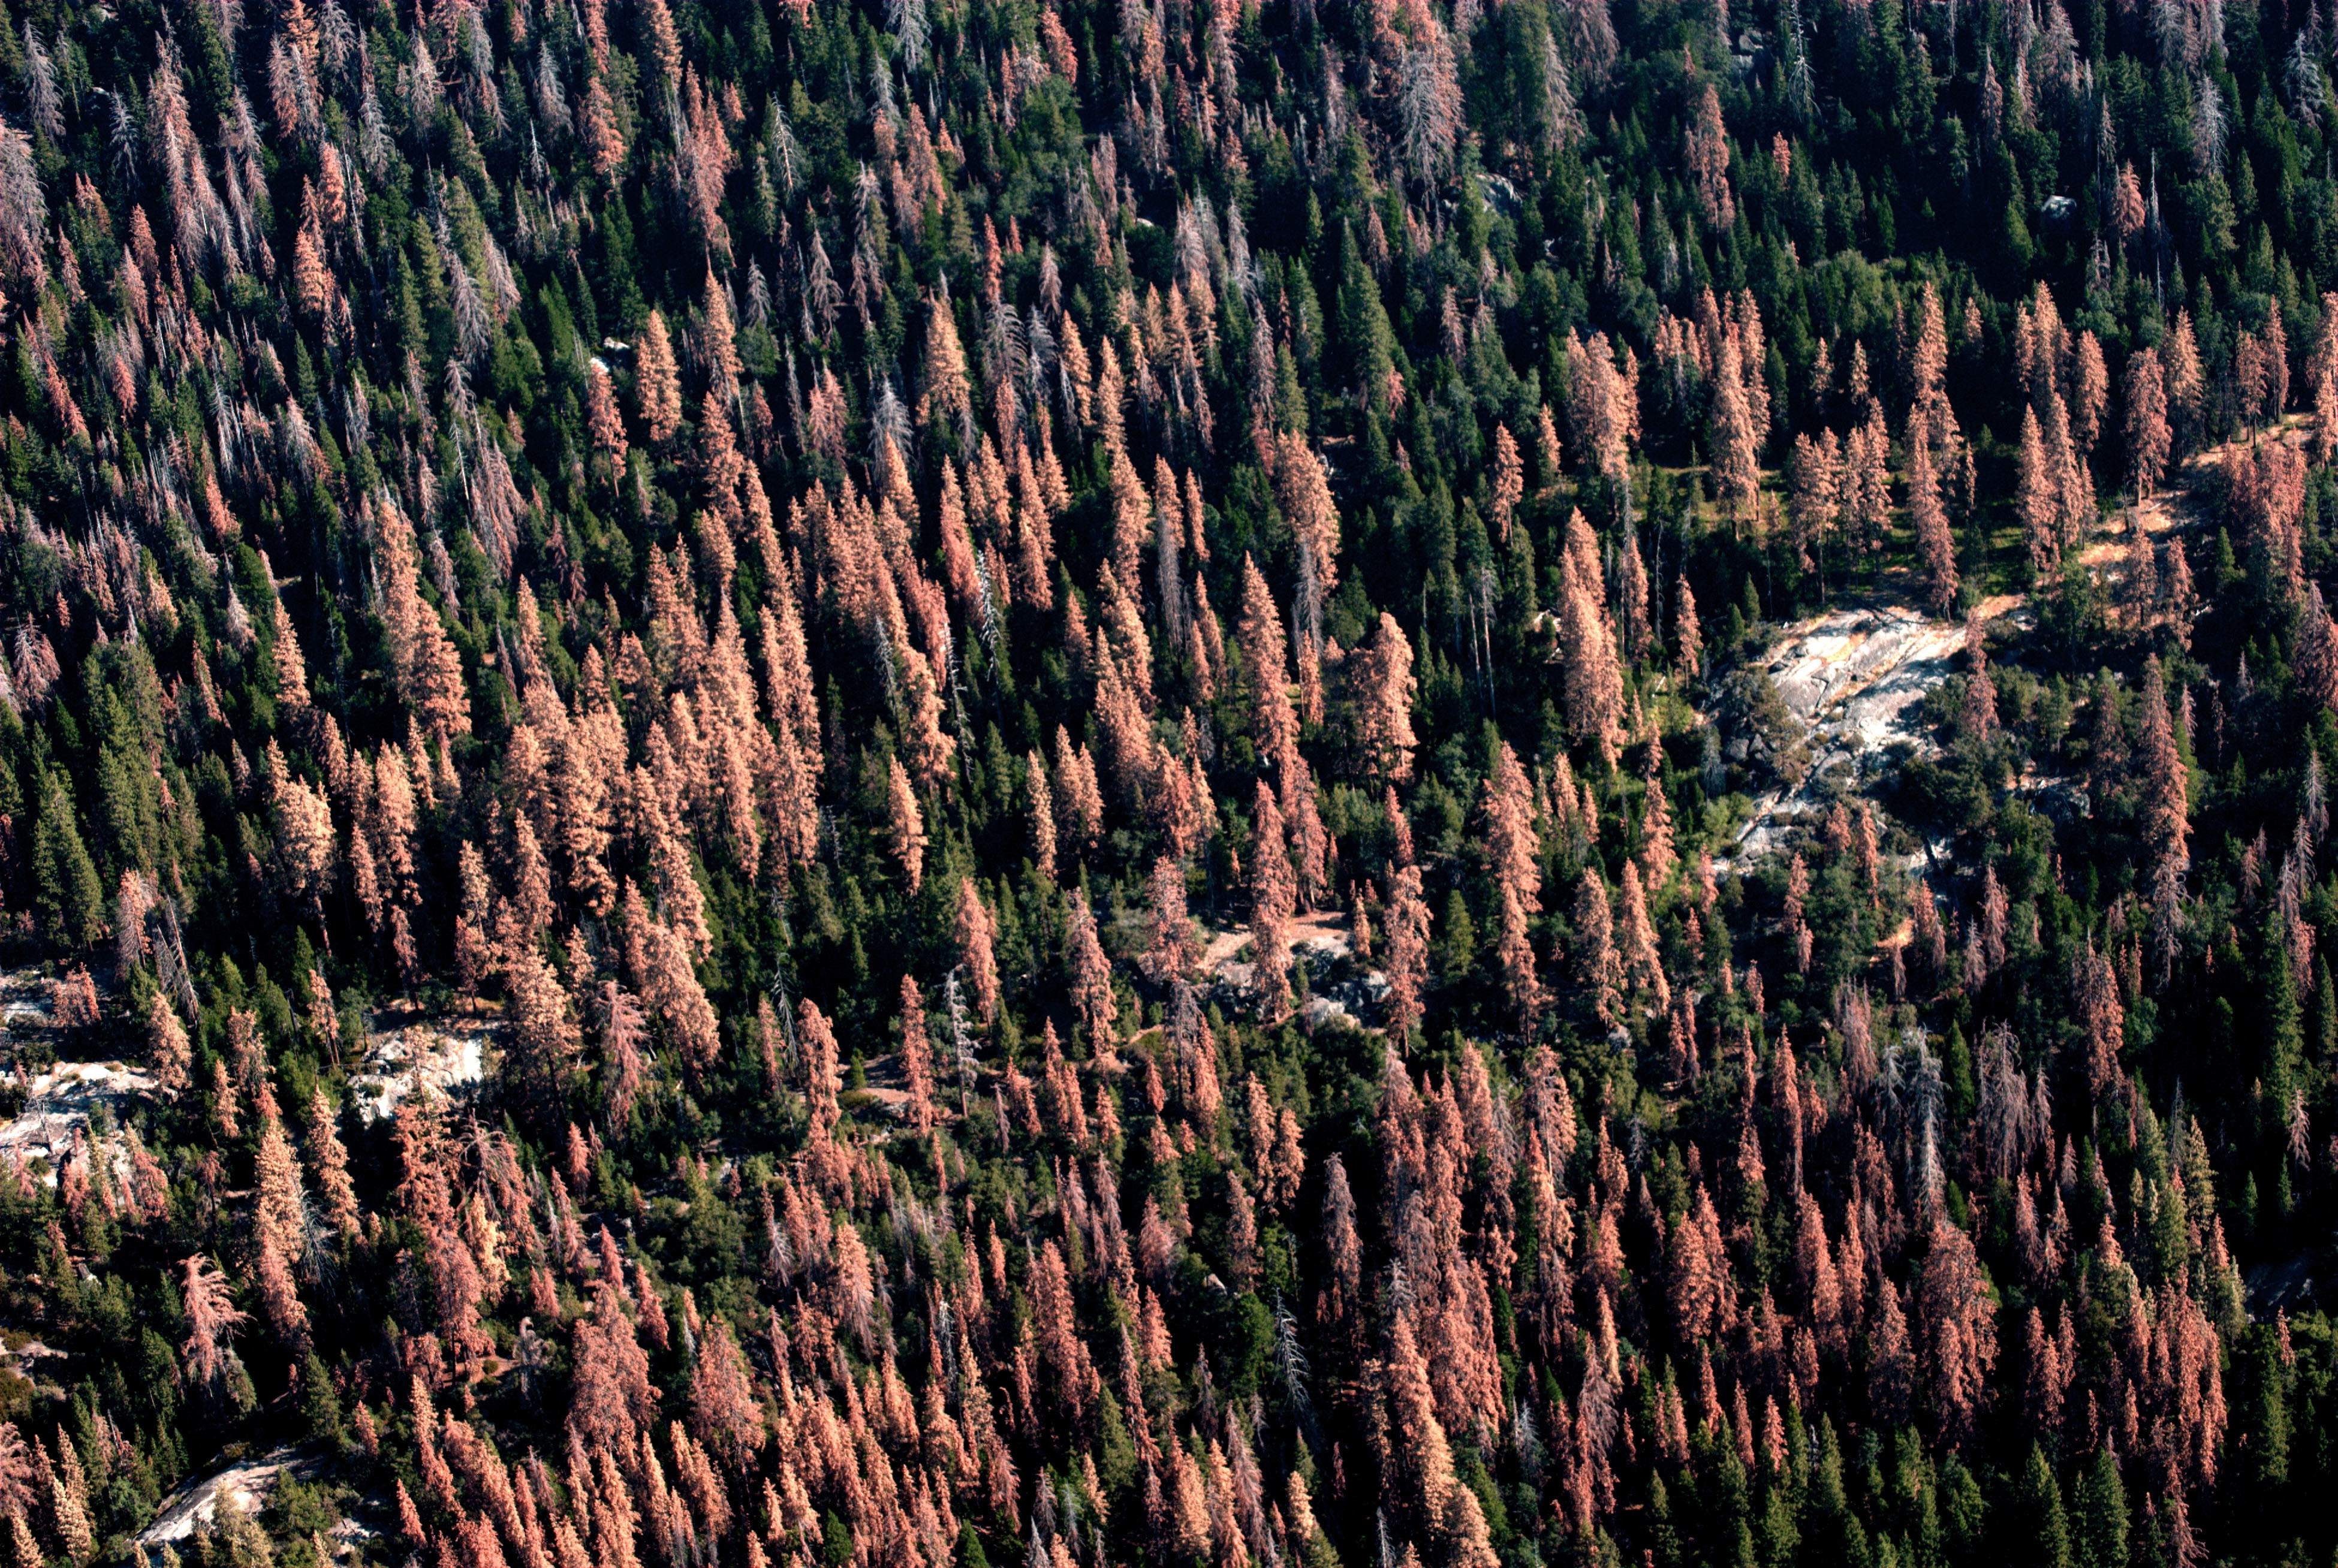 Colorado Mountain School >> Small Pests, Big Problems: The Global Spread of Bark Beetles - Yale E360